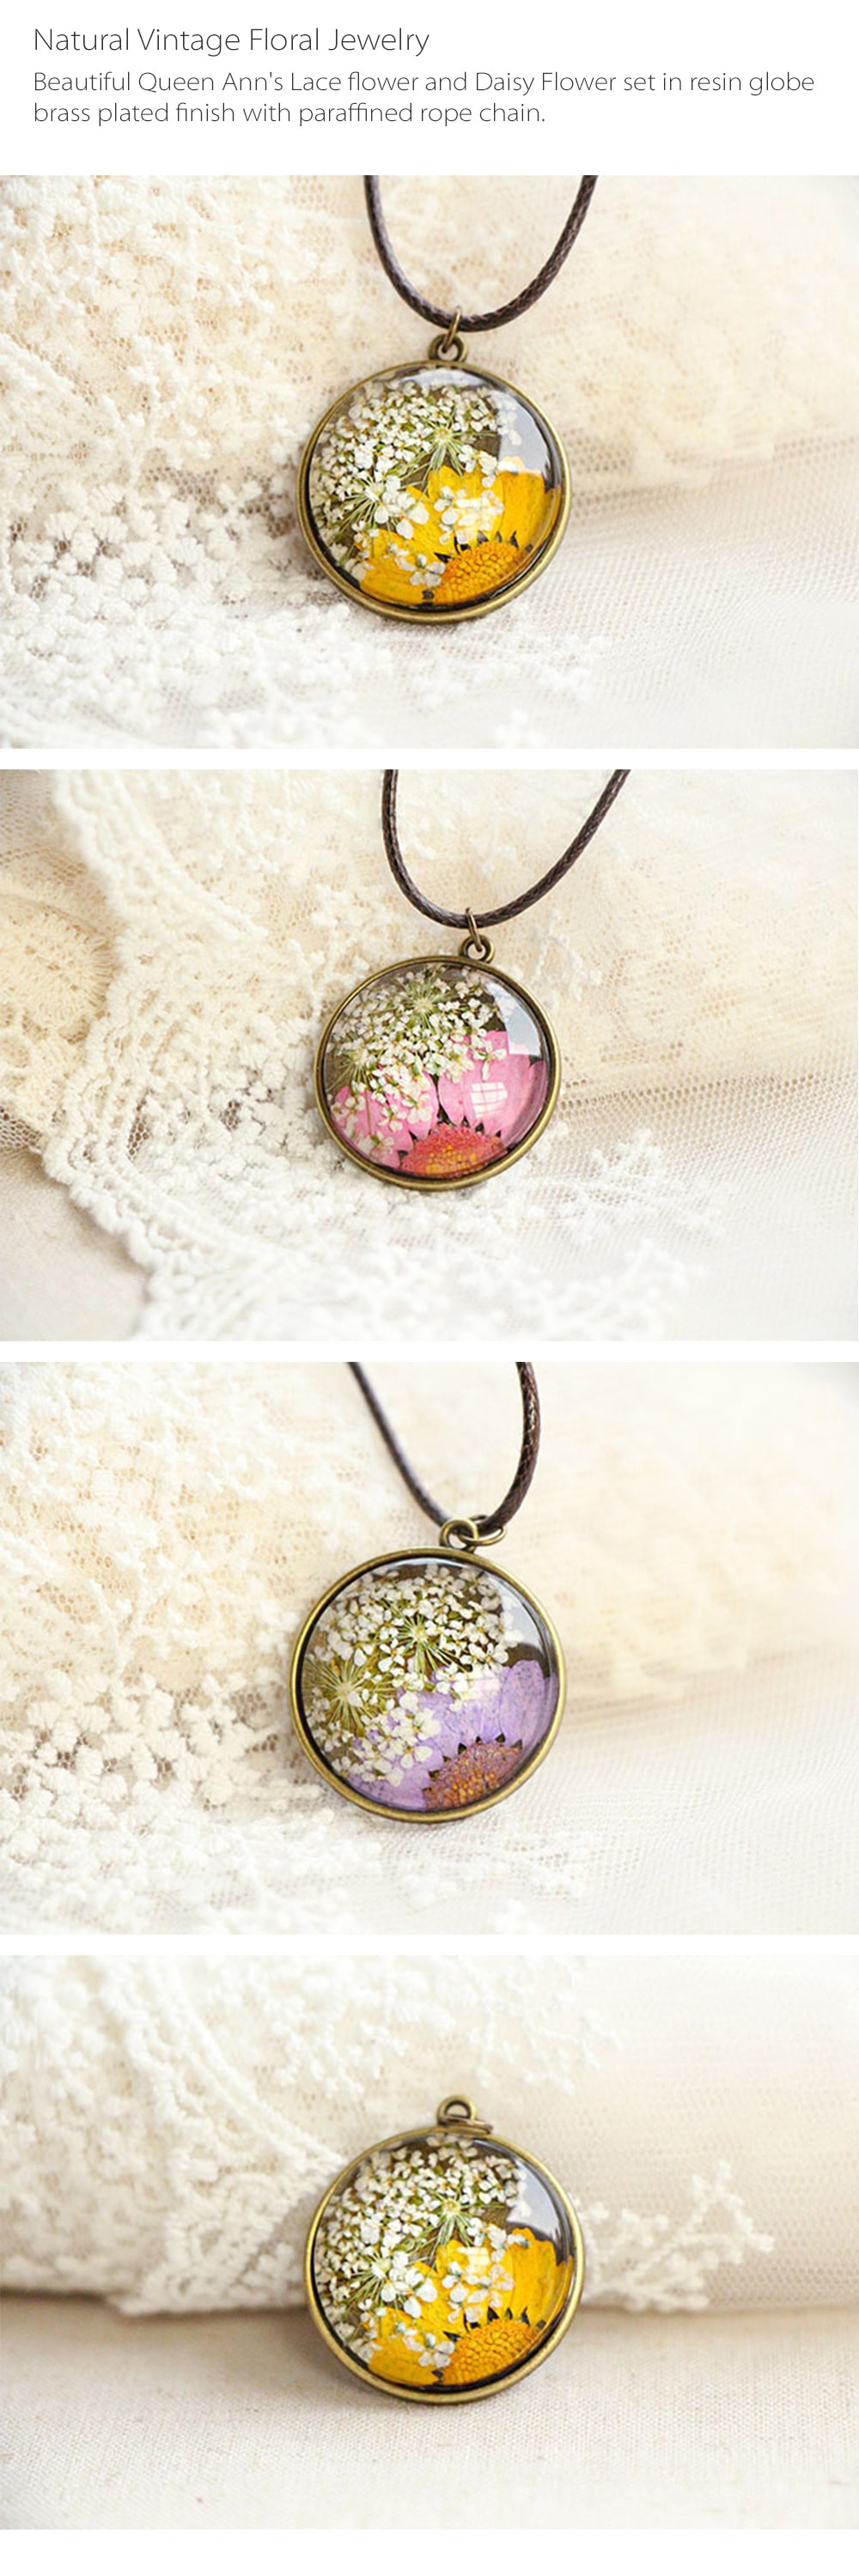 Pressed Flower Necklace Natural Vintage Floral Jewelry